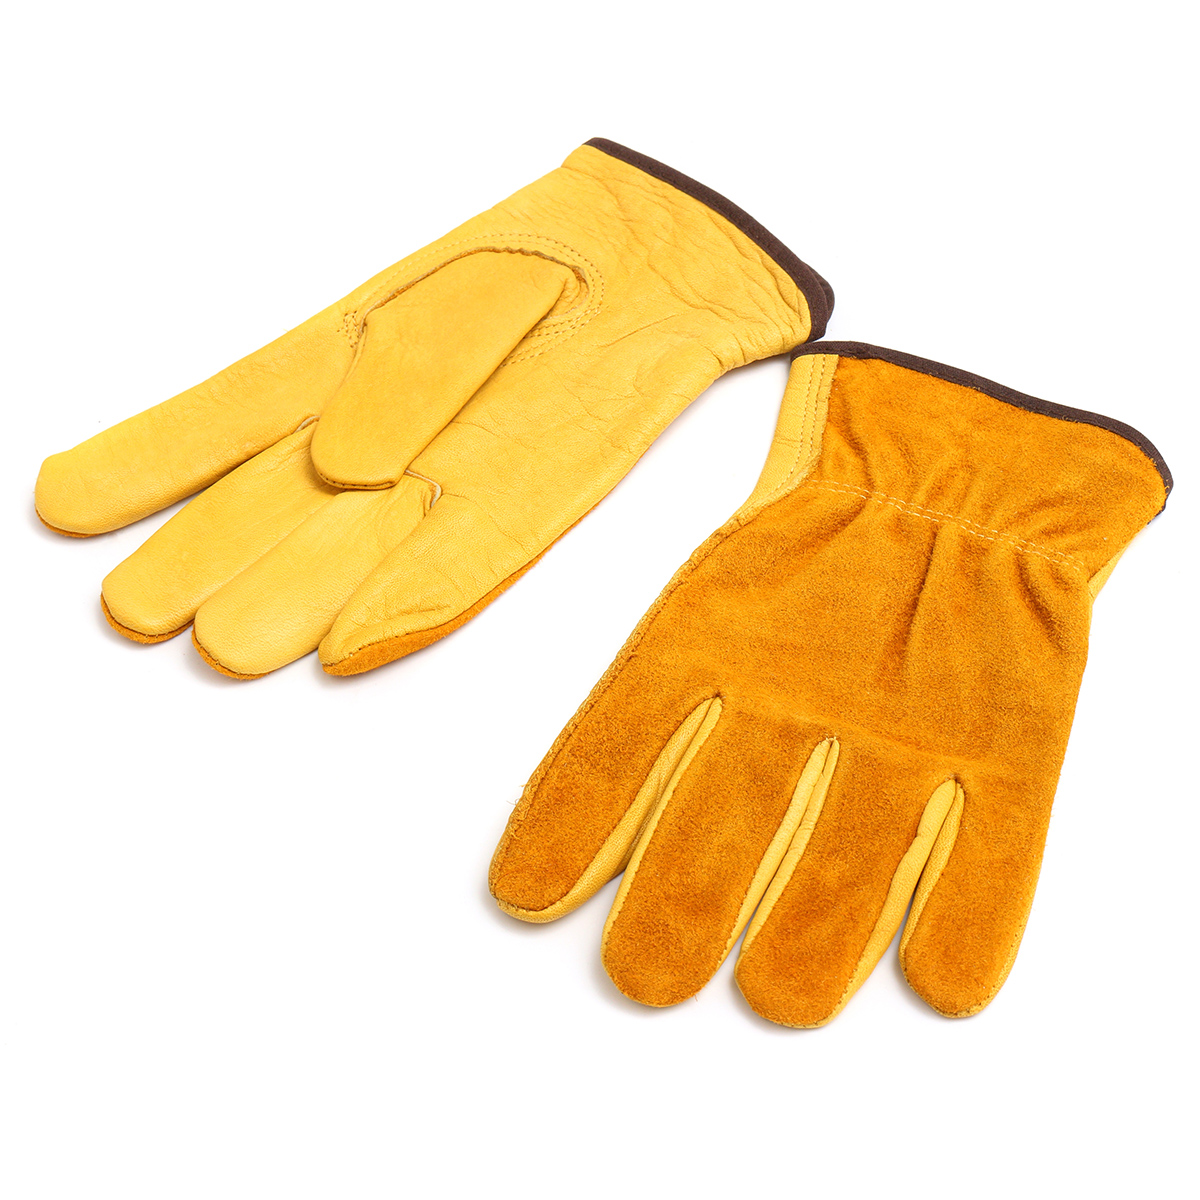 Premium Cowhide Leather Working Gloves Labor Garden Security Mechanical Repair Protective Gloves